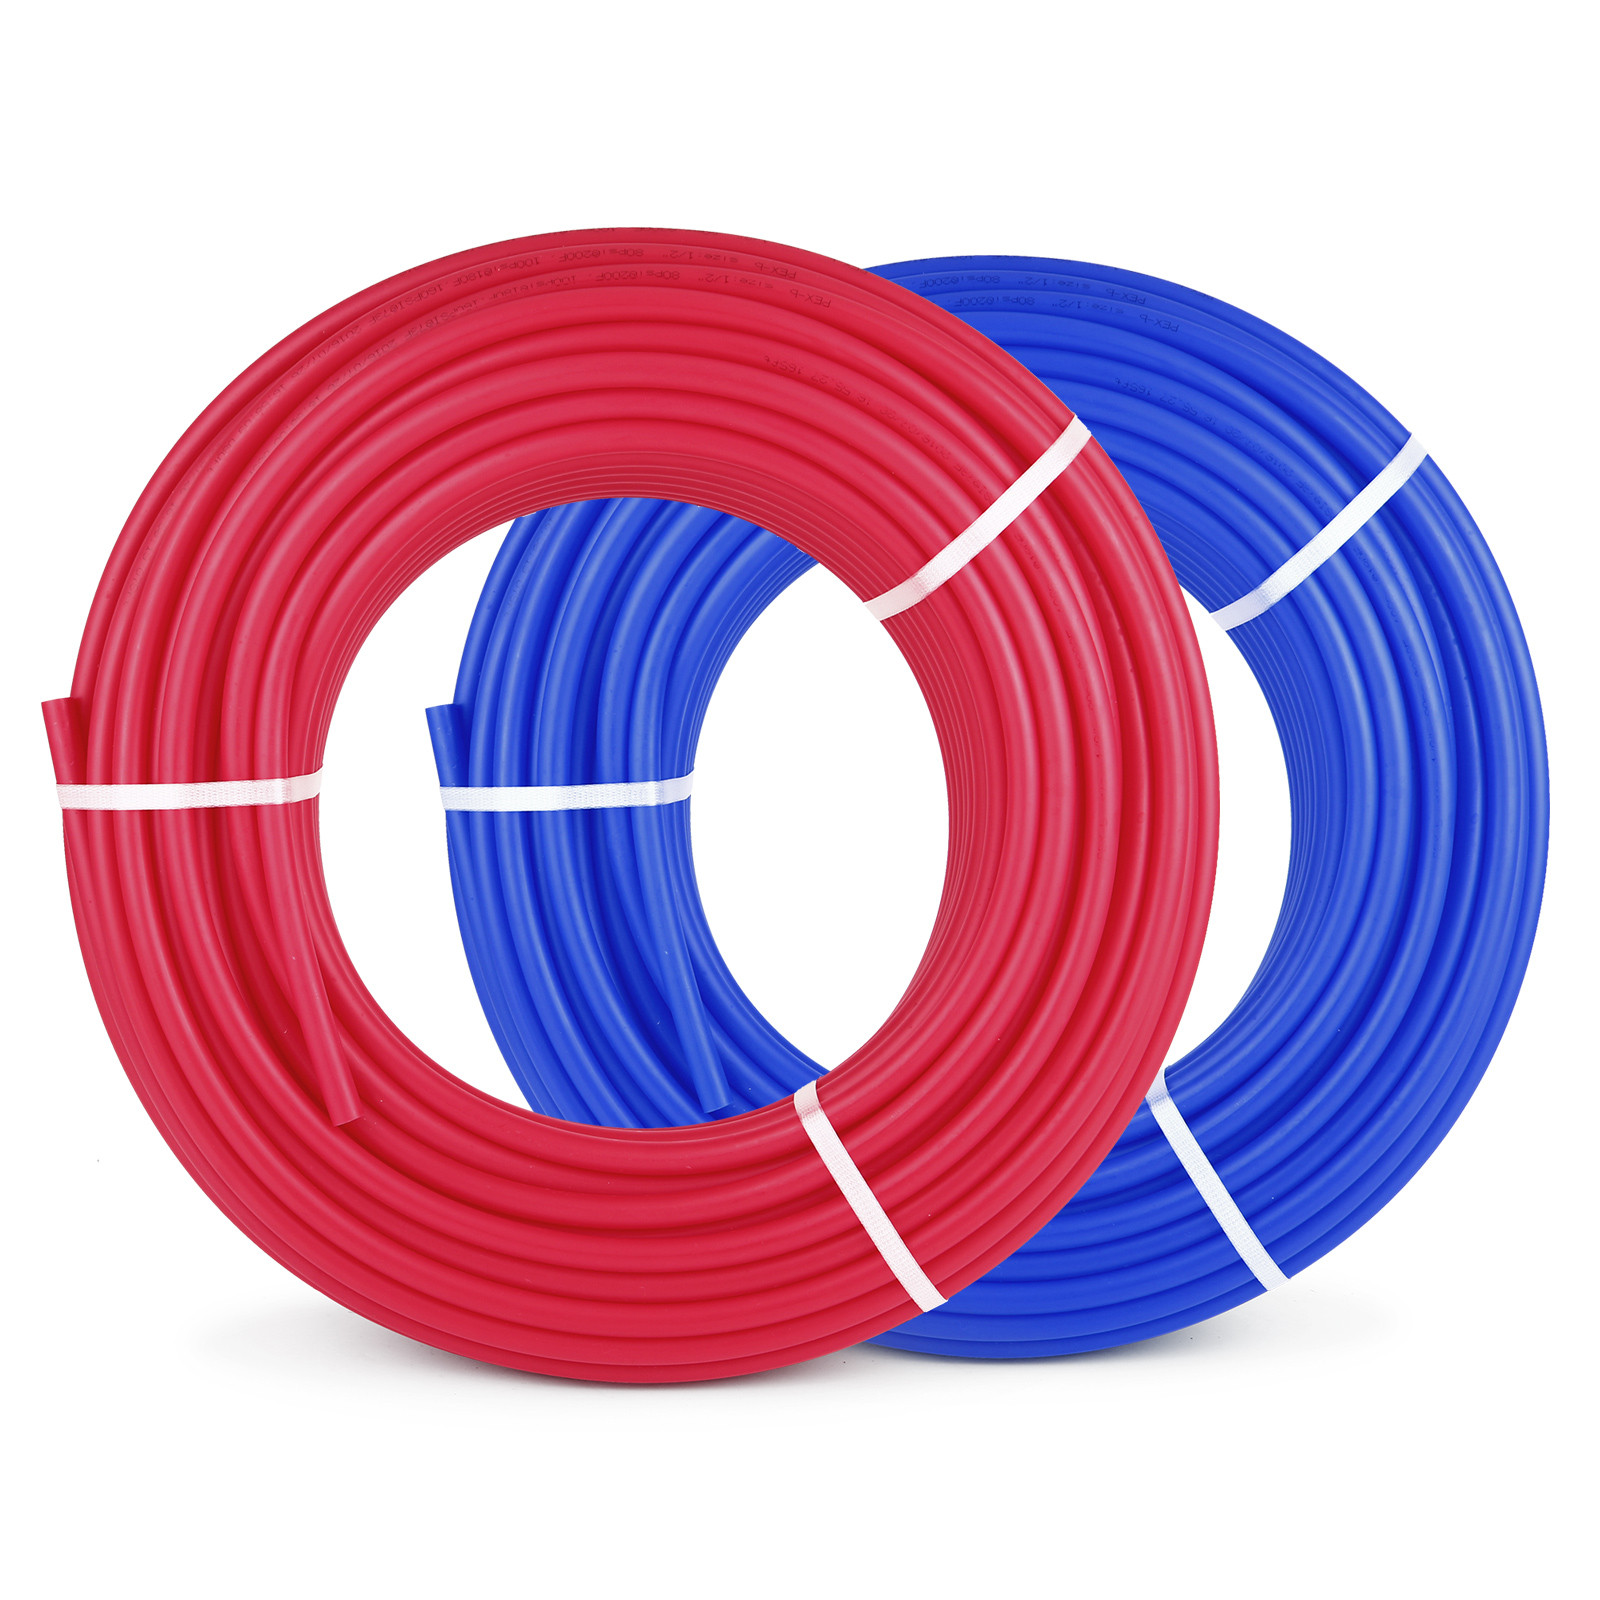 HEATING TUBE PLUMBING BE HIGHLY HIGHLY HIGHLY PRAISED 2 YEARS WARRANTY GREAT NEW GENERATION 1f6a12